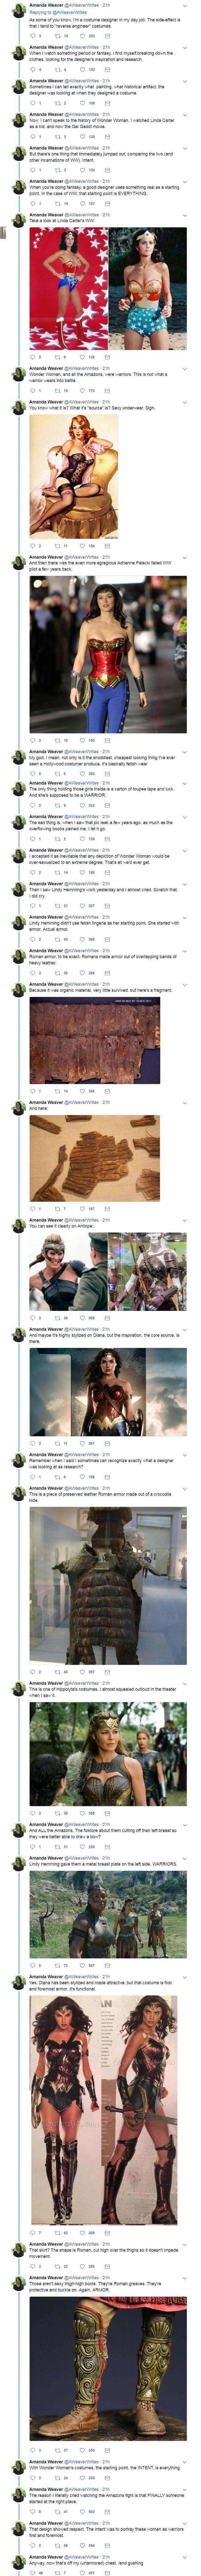 The Wonder Woman costume - there has been a lot of discussion about Gal Gadots costume. So thank you for this.